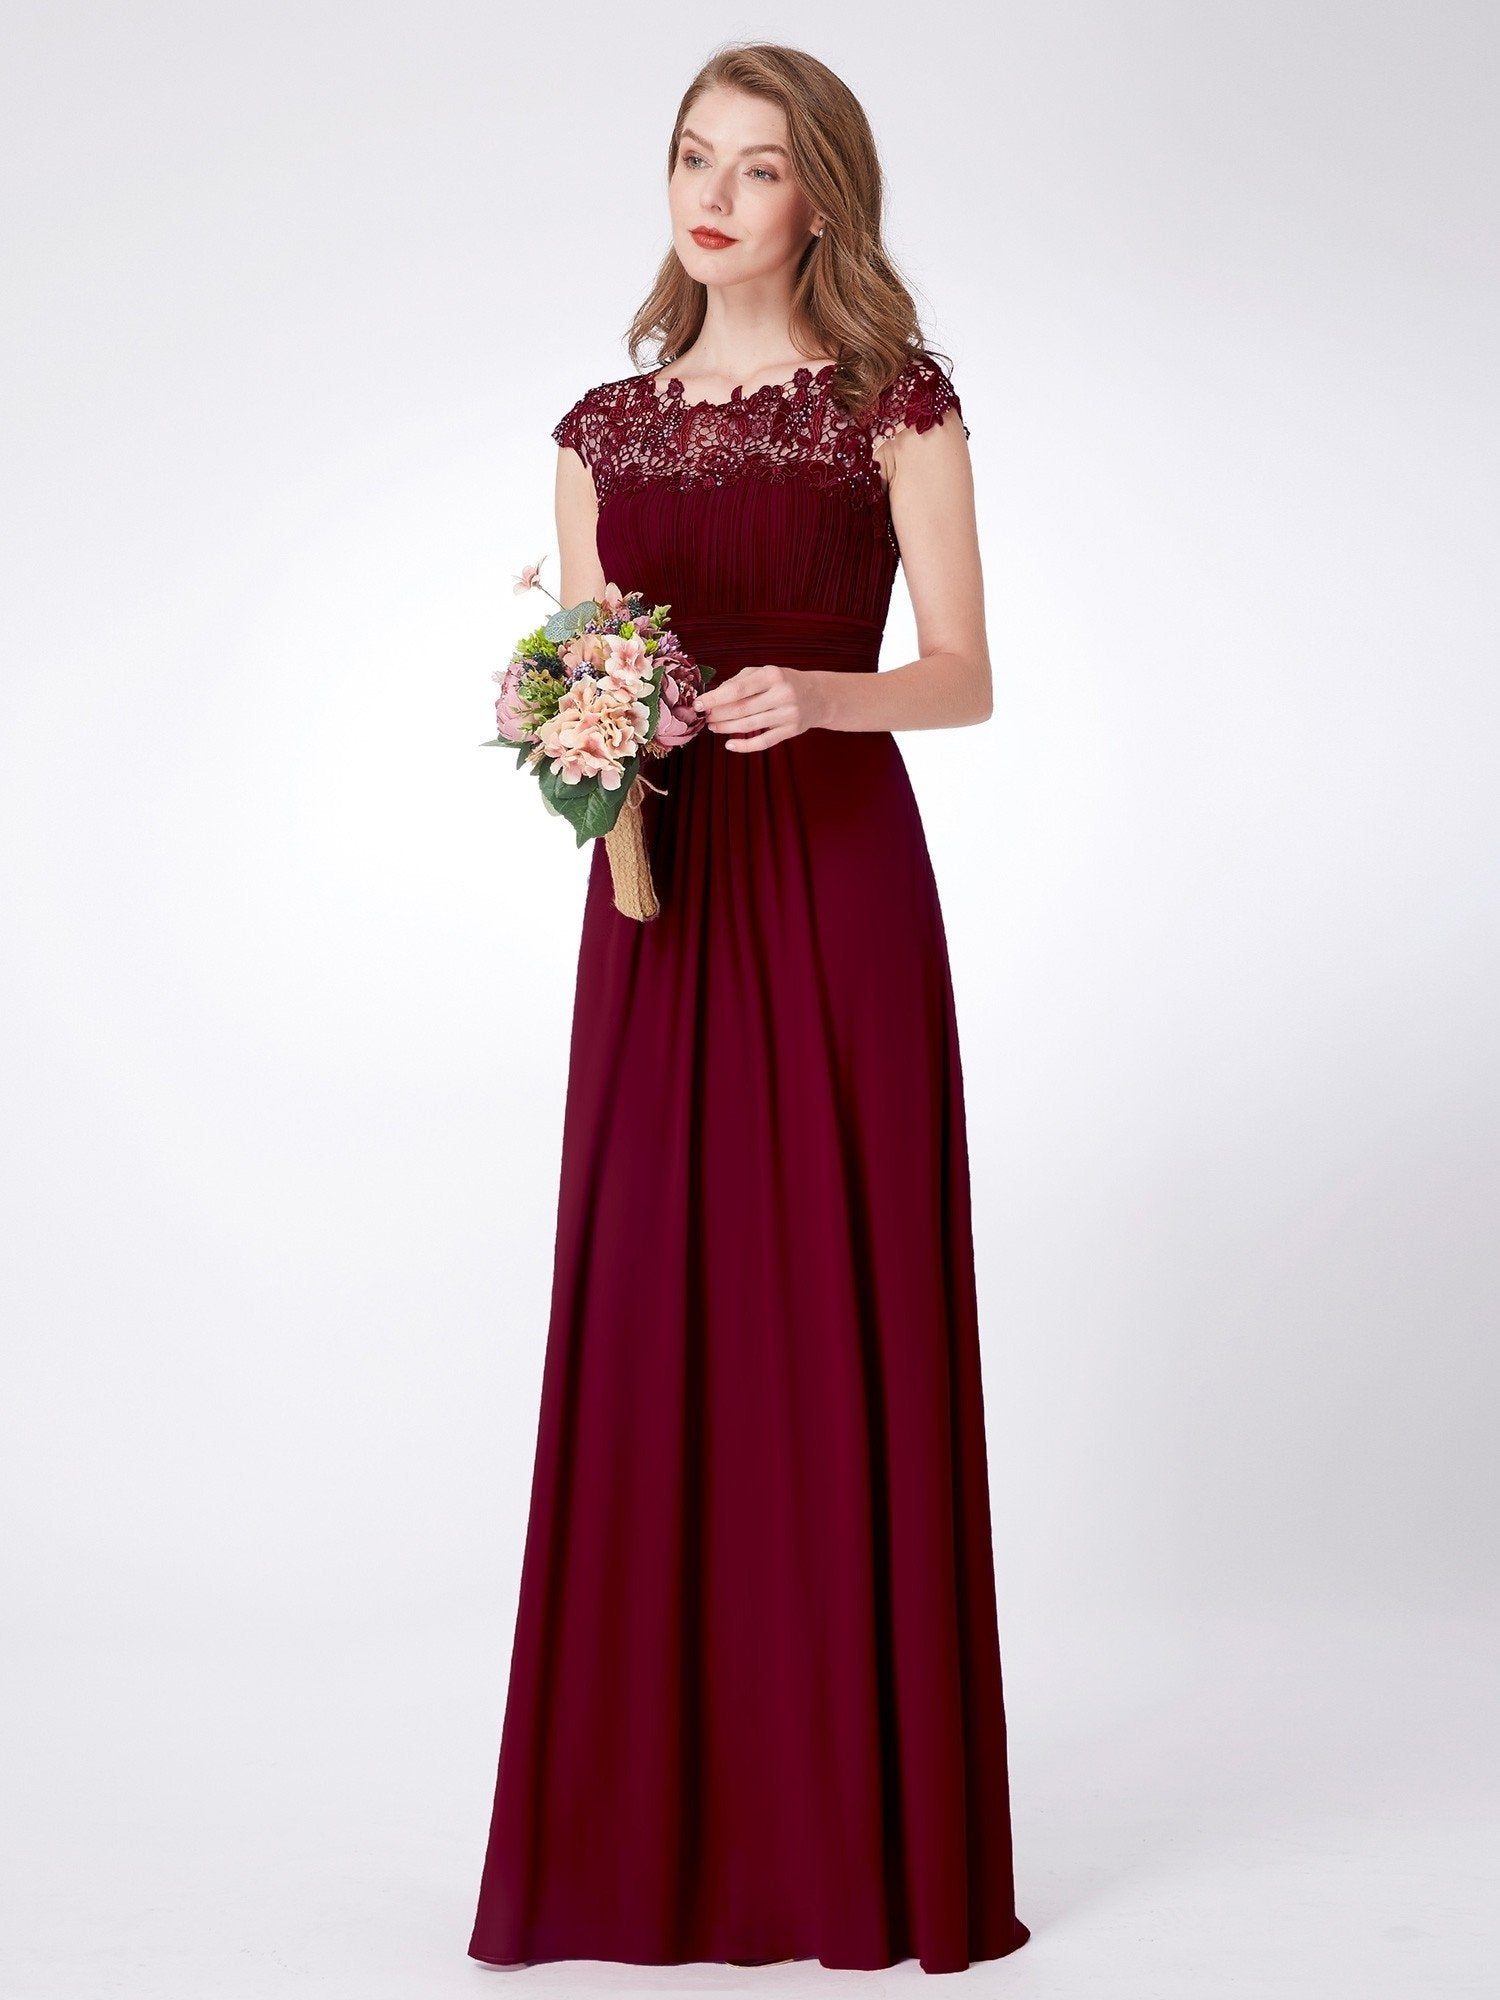 lace sleeve burgundy bridesmaid dress